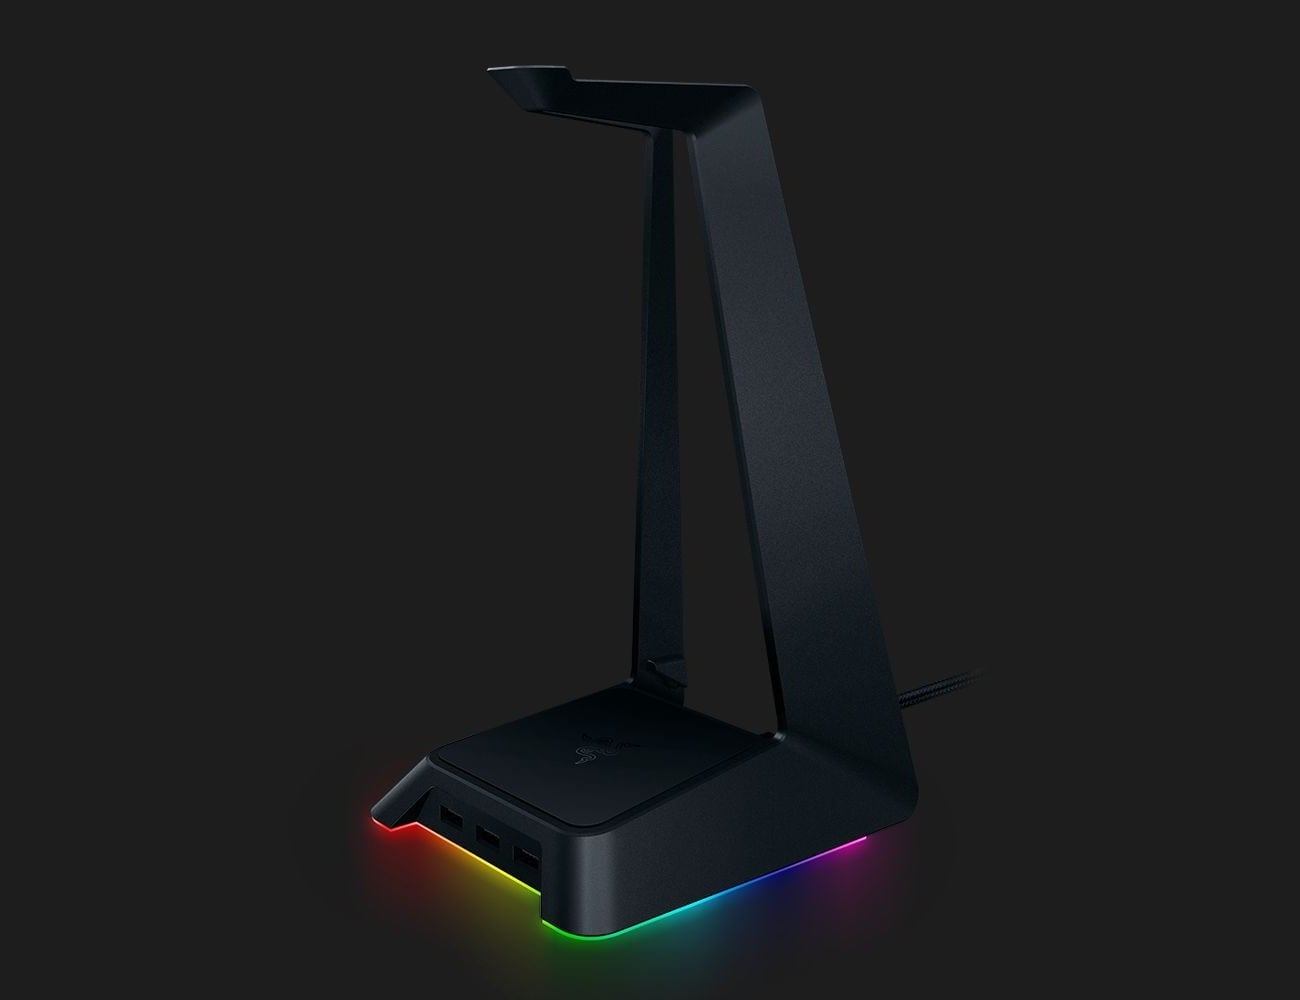 This Usb Headset Desk Stand Is Perfect For Organized Gamers